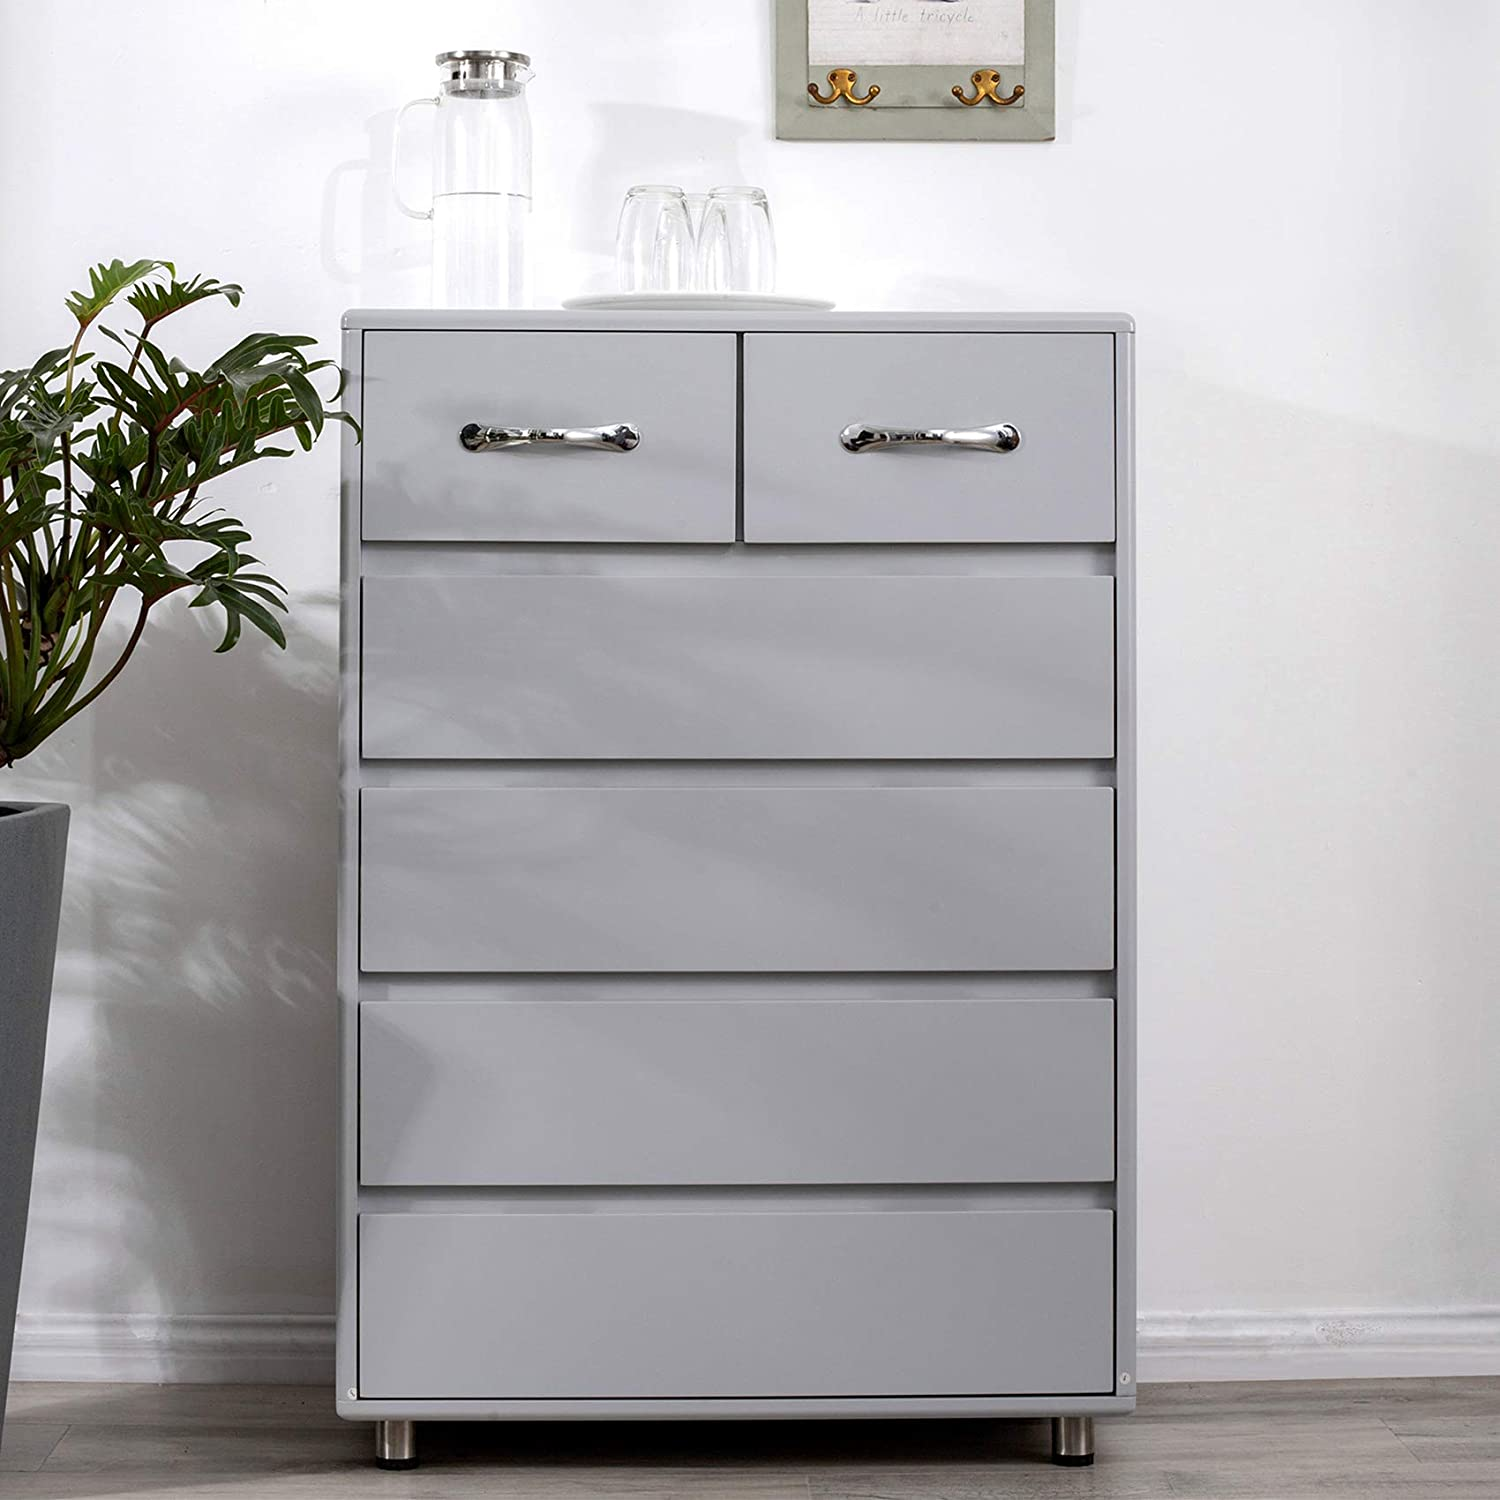 Norcia Modern Chest of Drawers for Bedroom, Sleek Corner 6 Drawer Dresser with Steel Tube Legs and Rubber Pads, Tall Cabinet with Storage Grey